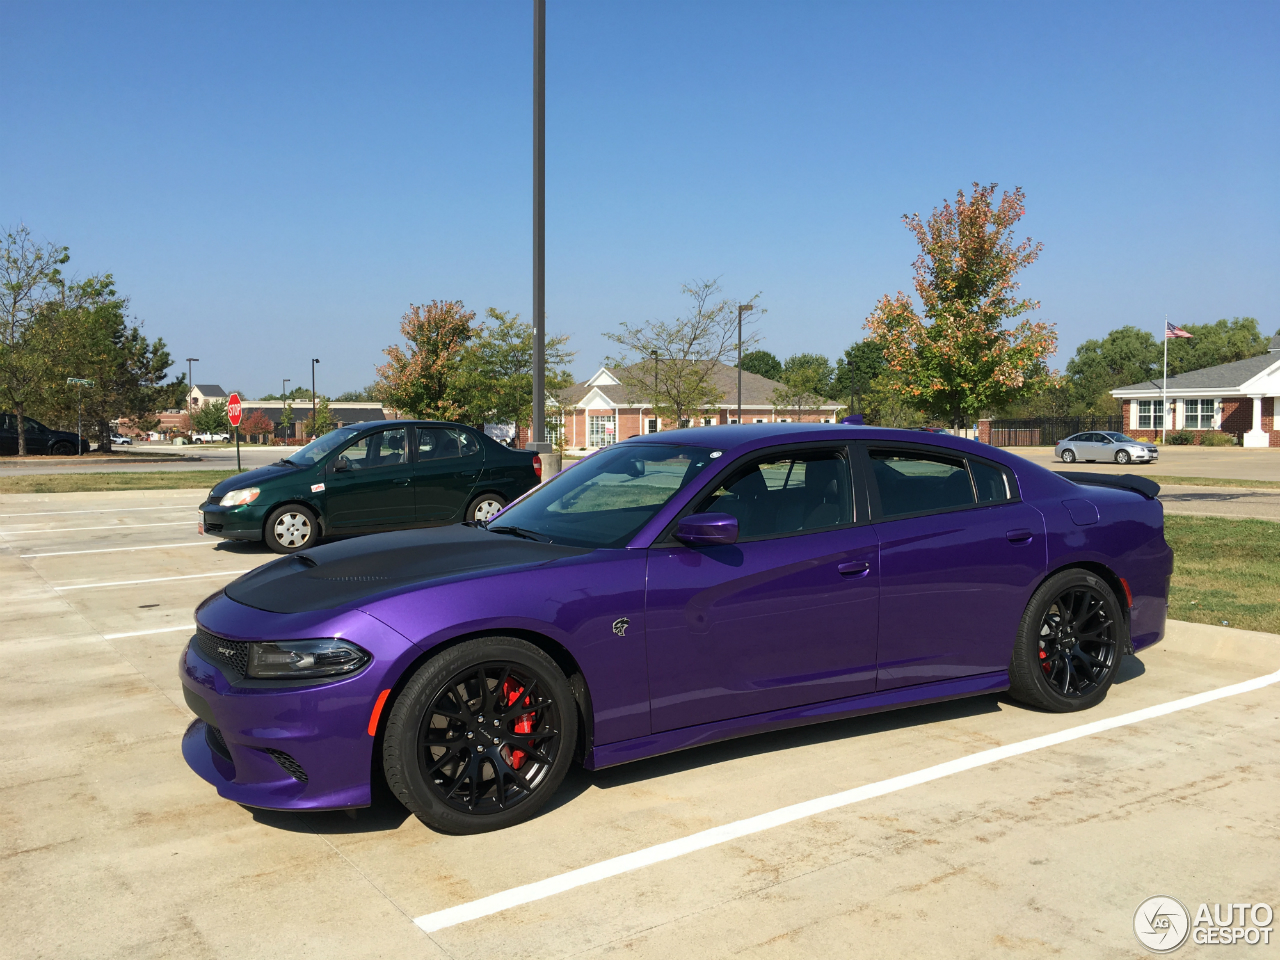 17 Charger Hellcat >> Dodge Charger SRT Hellcat 2017 - 18 May 2018 - Autogespot